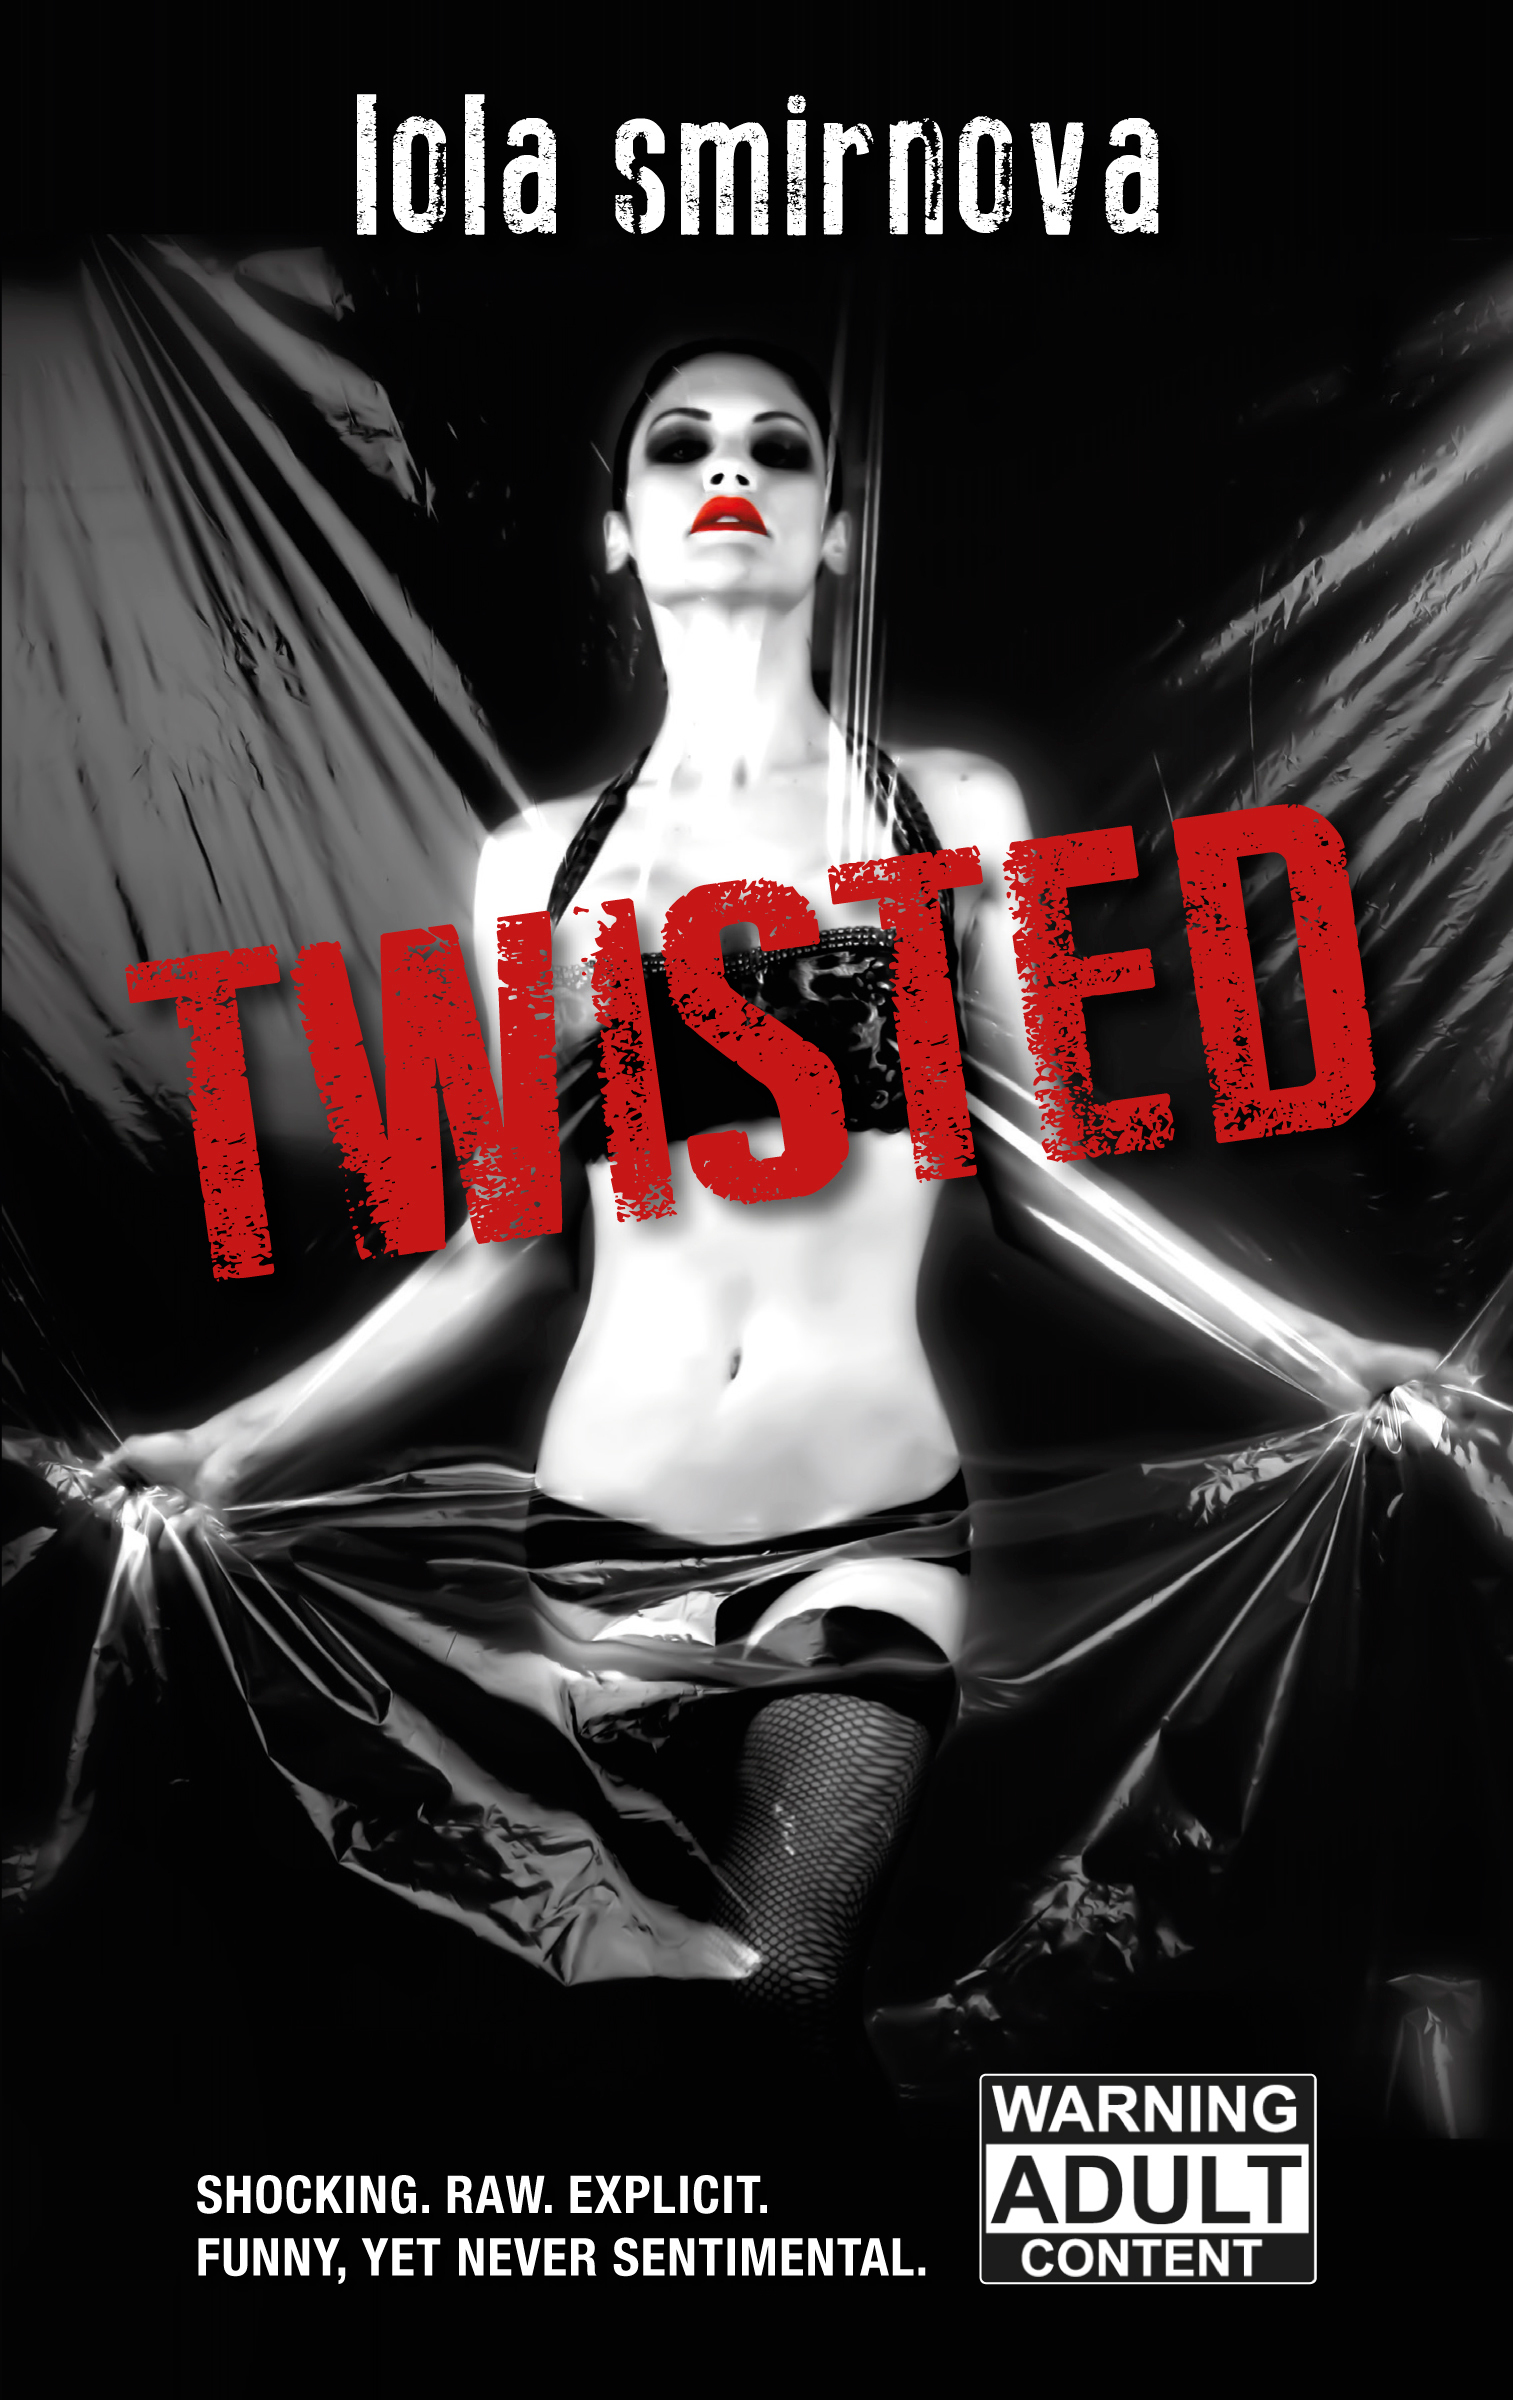 'Twisted' Explores the Sex Trade